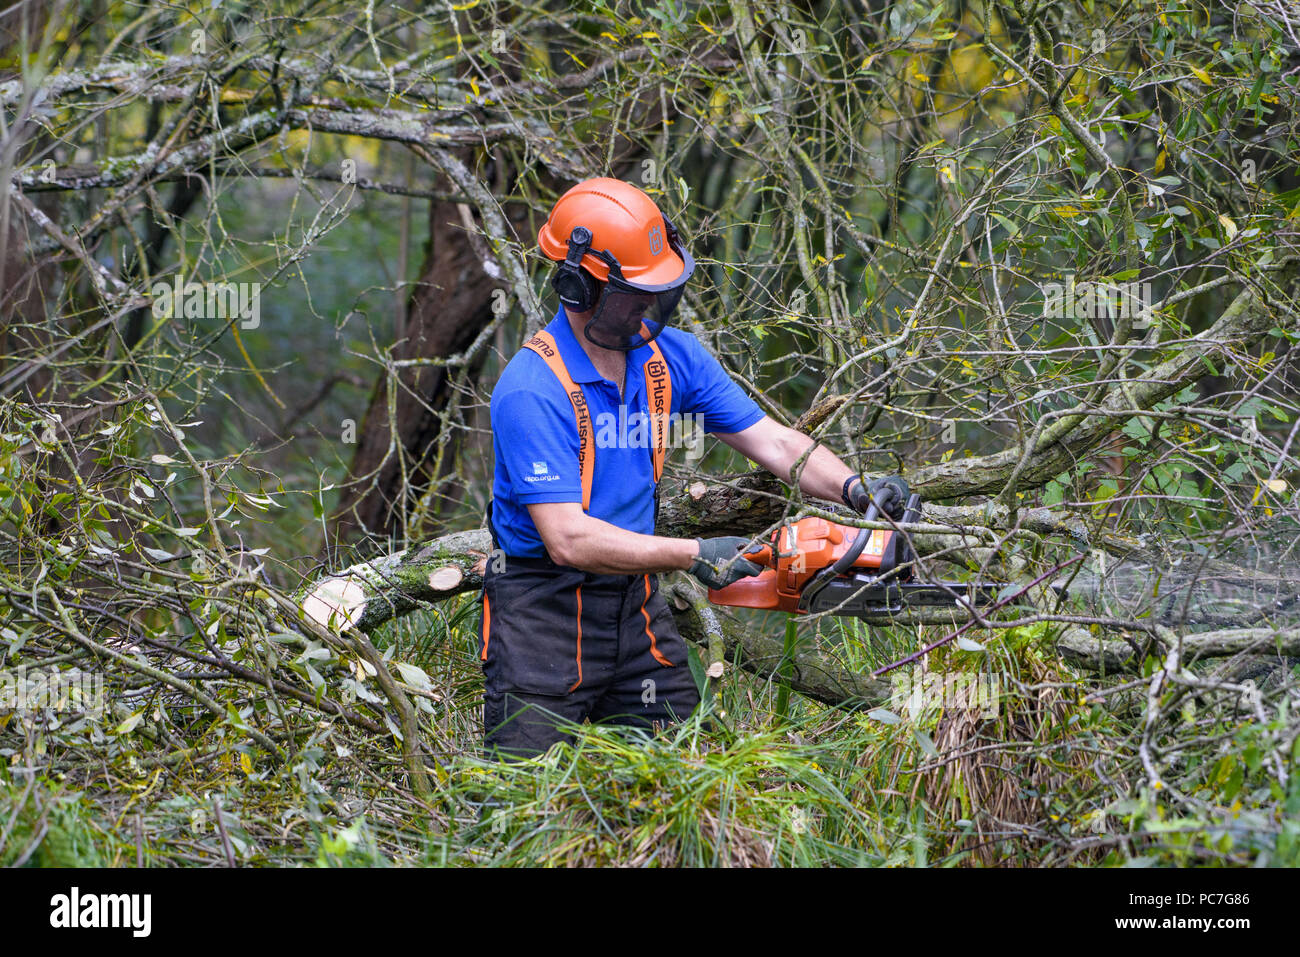 Man using a Husqvarna chainsaw to thin out a wood, RSPB Leighton Moss, Silverdale, Carnforth, Lancashire. - Stock Image